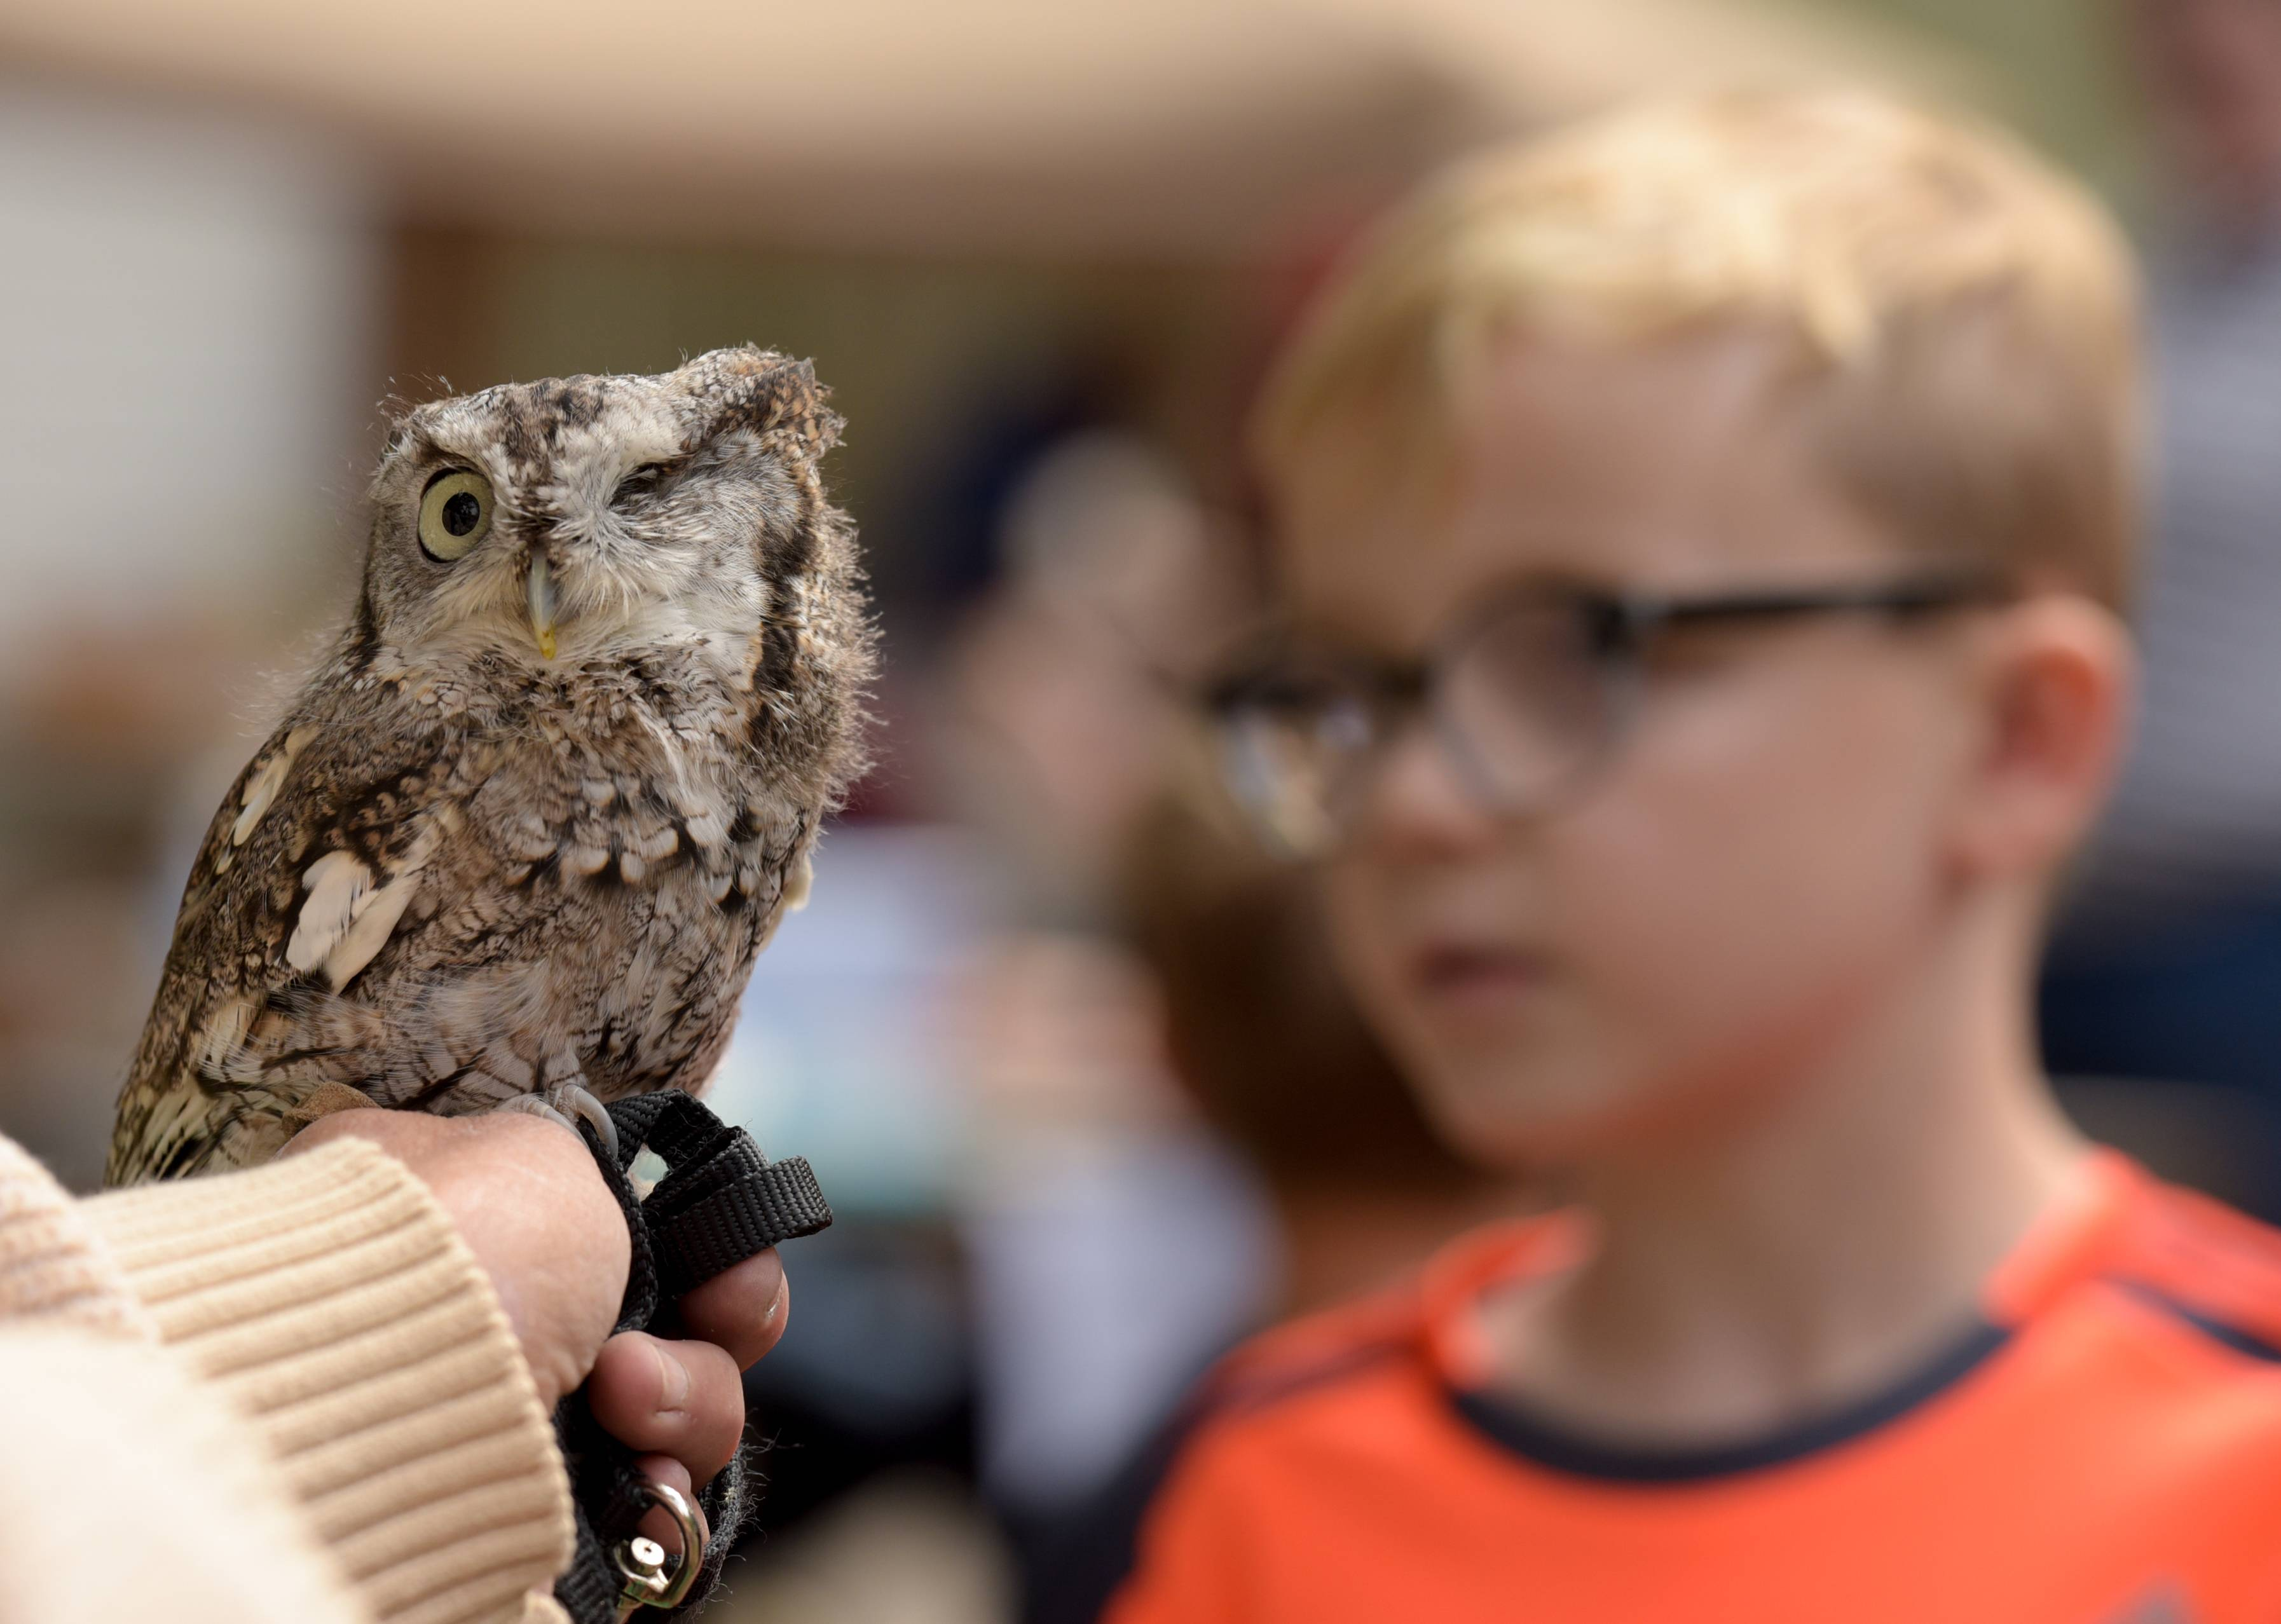 One-eyed eastern screech owl Zephyr is a resident at the Fox Valley Wildlife Center. The owl was on display Sunday during an open house at the Elburn facility.